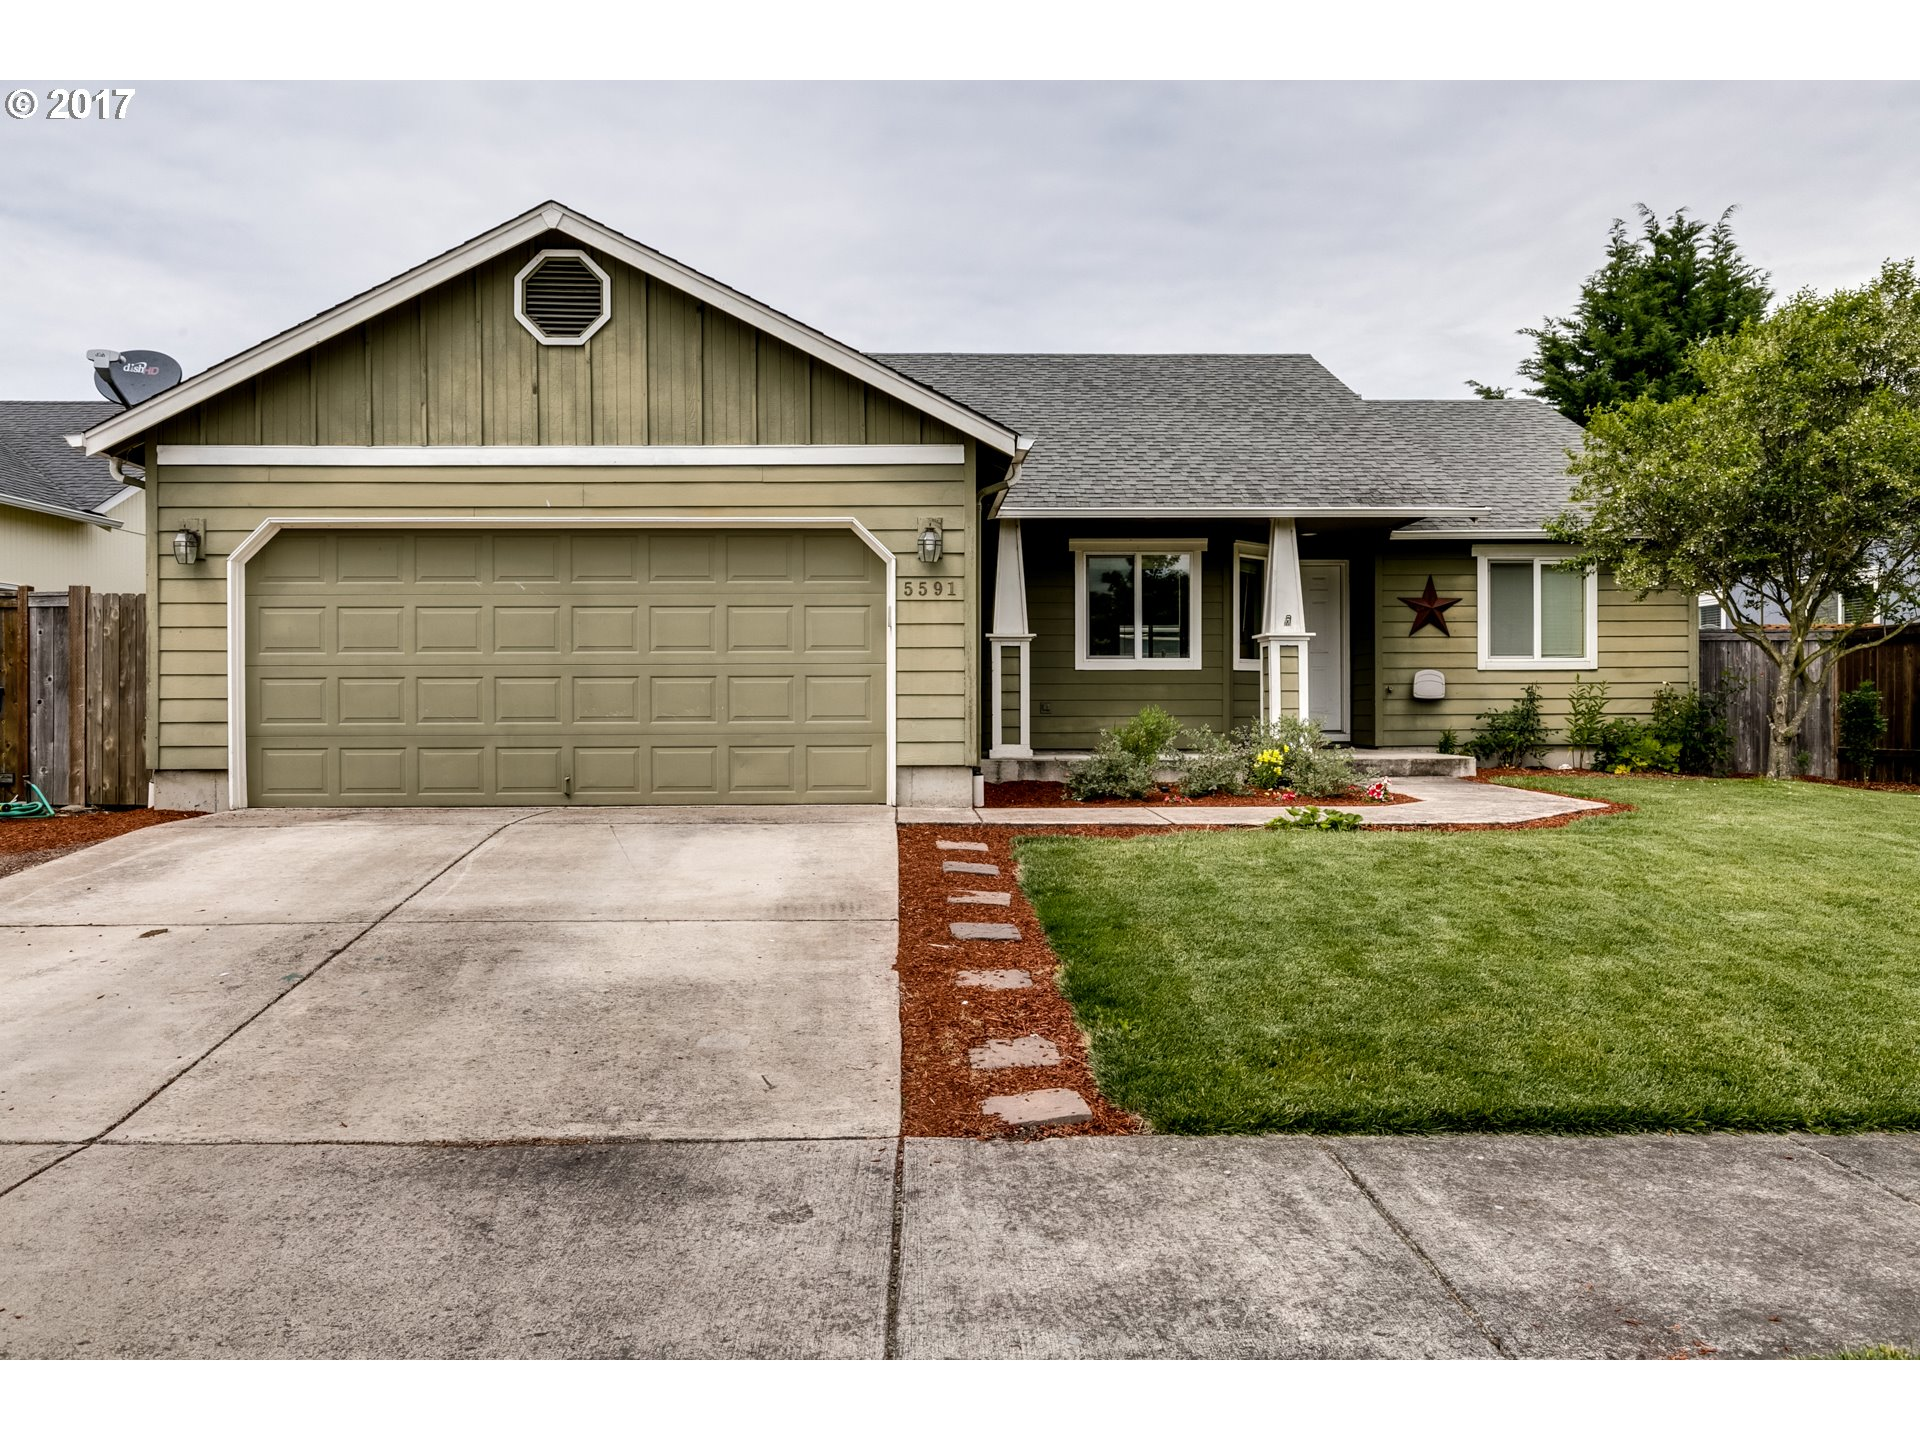 5591 AUSTIN WAY Eugene, OR 97402 - MLS #: 17623374